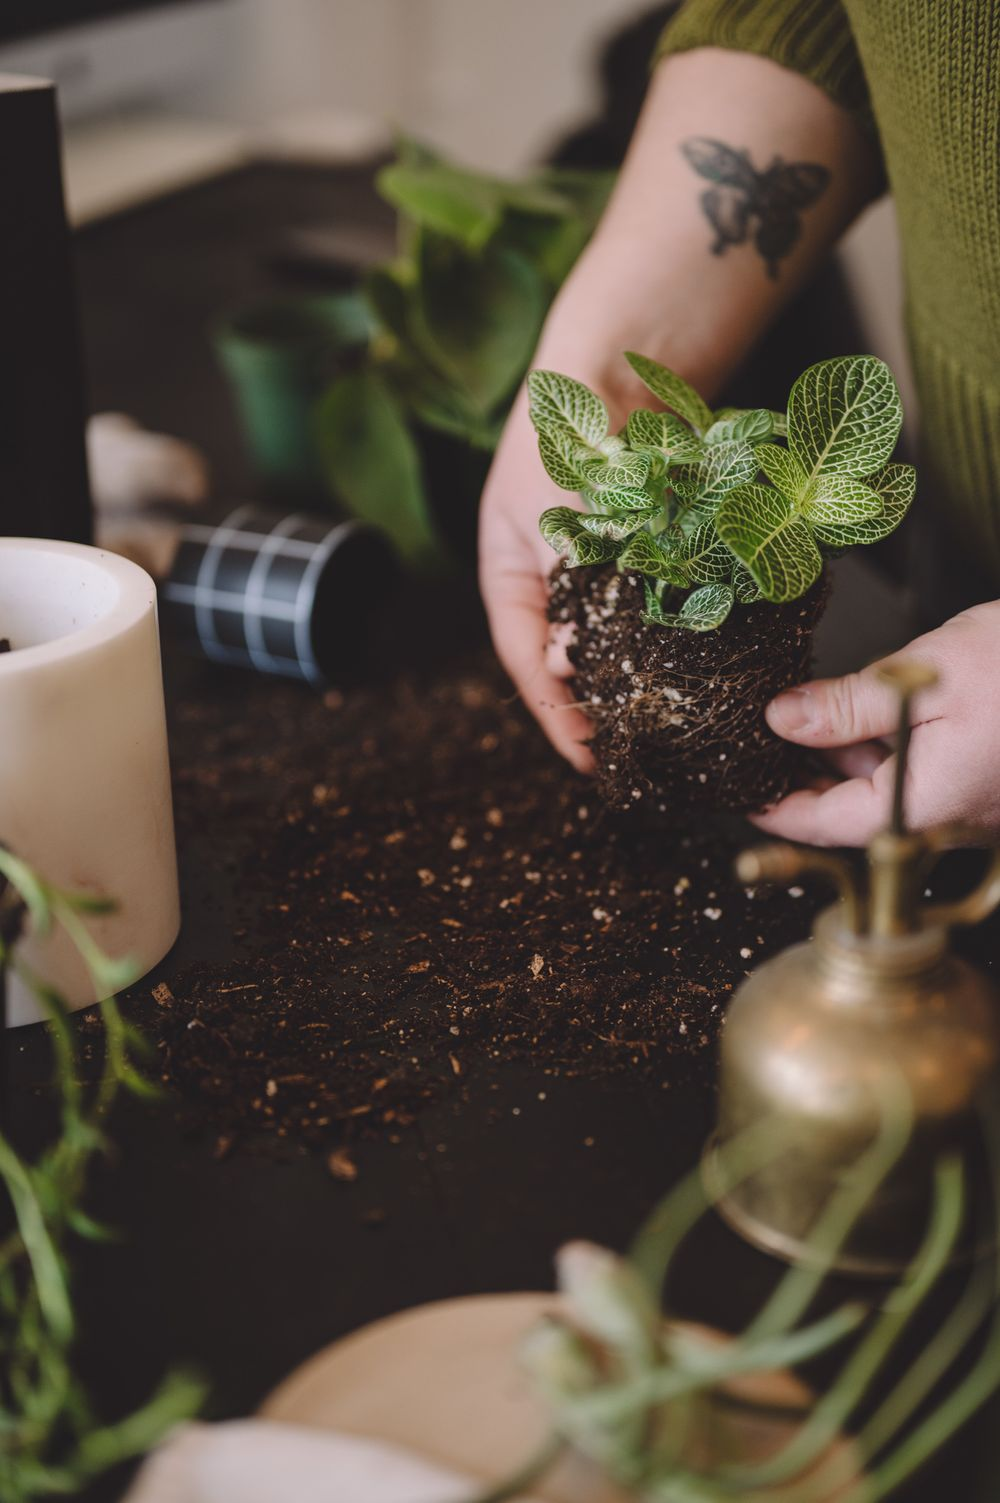 Brand photo by Tiffany Kelterer of womans hands repotting a plant at Belltown store Fringe in Seattle